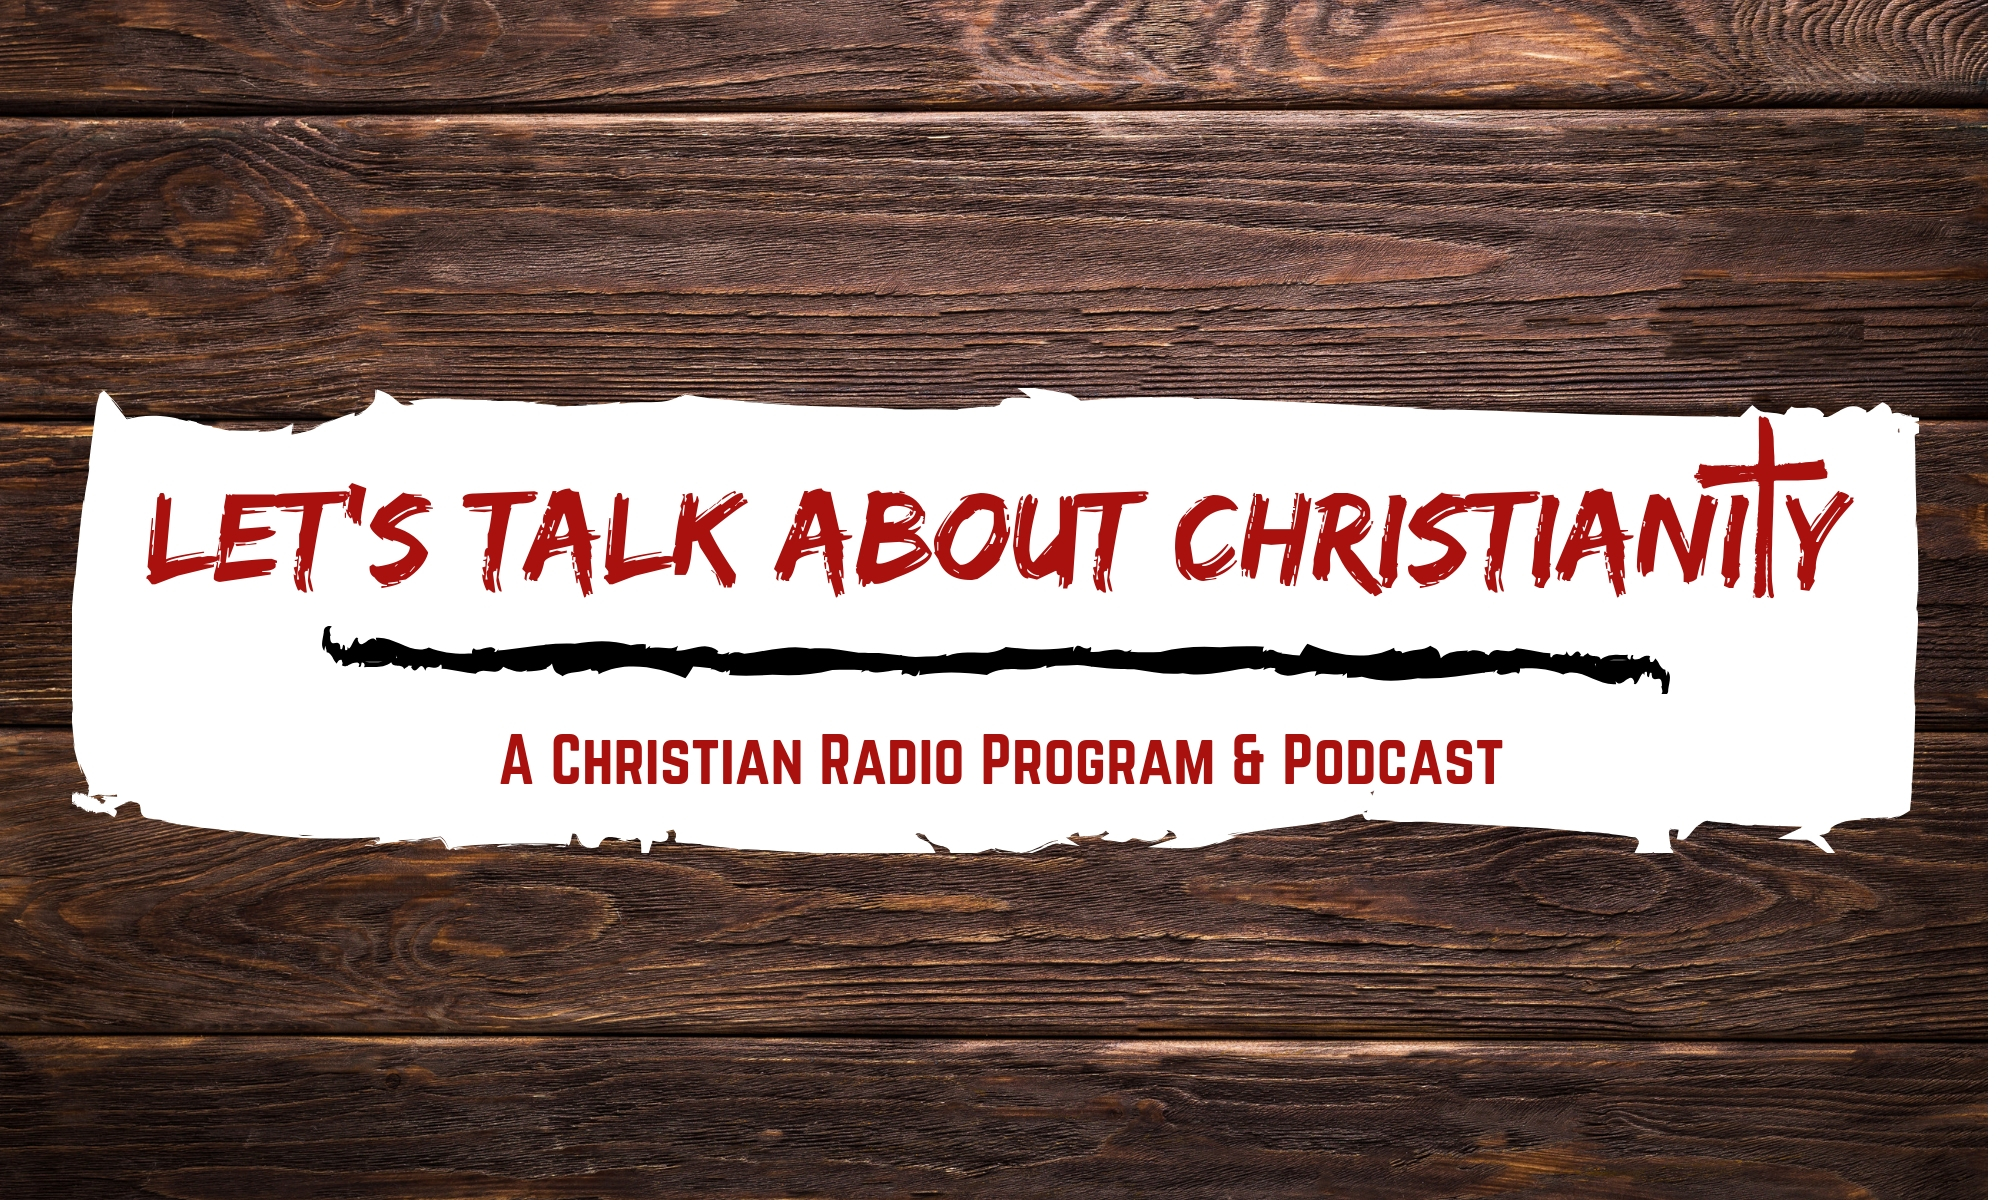 Let's Talk About Christianity